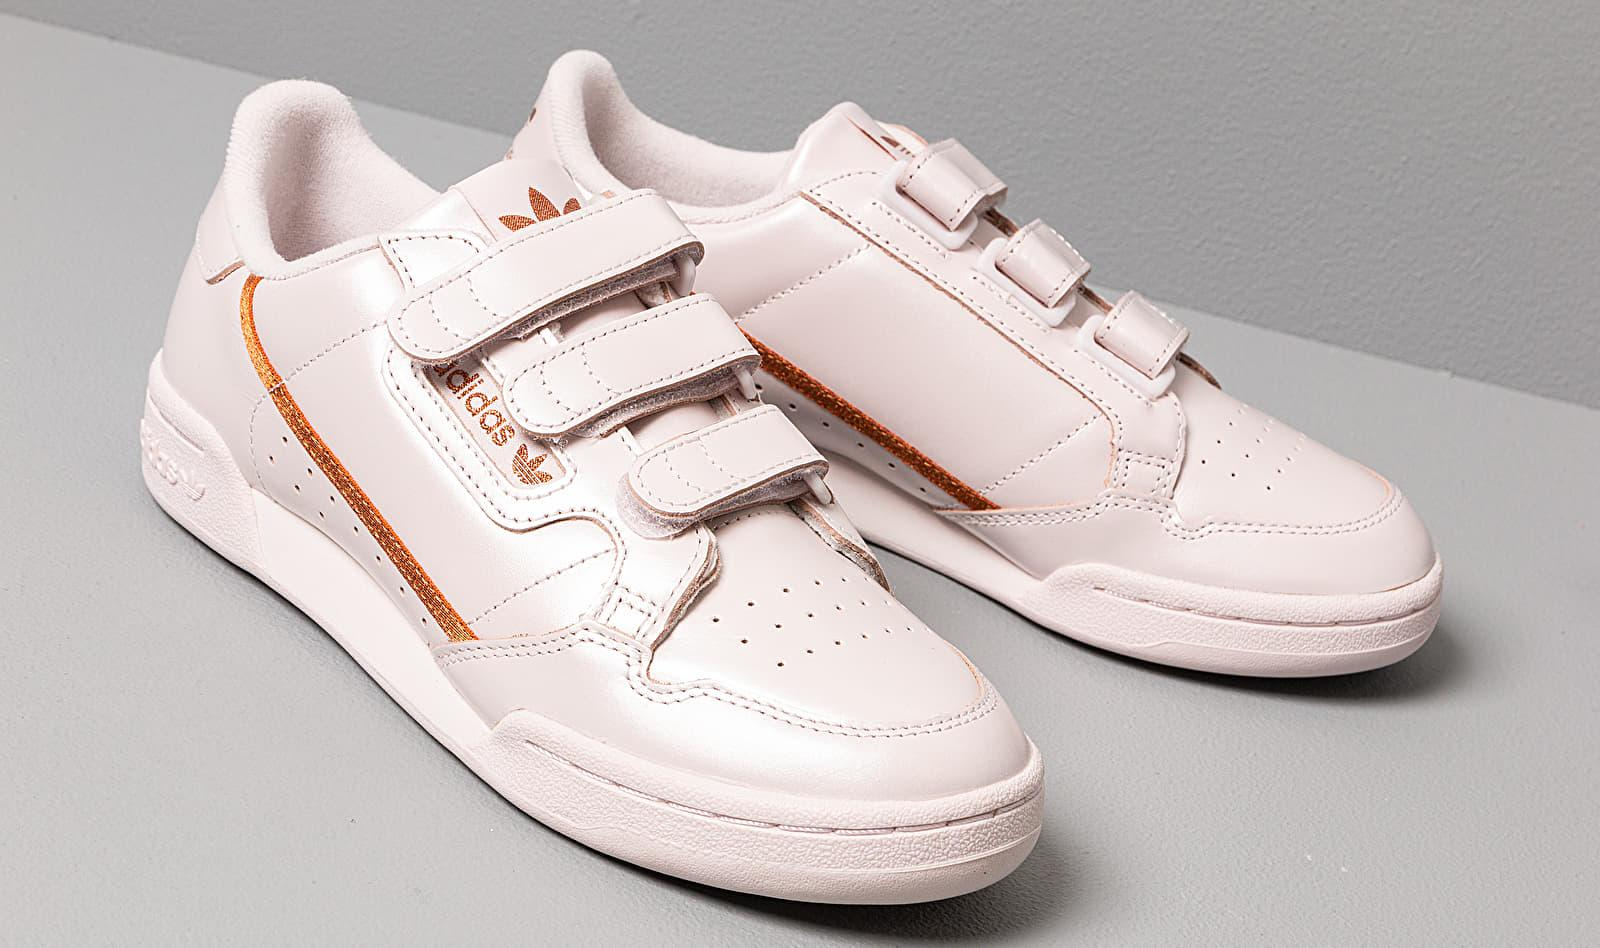 Adidas Continental 80 W Strap Orchid Tint/ Copper Metalic/ Orchid Tint